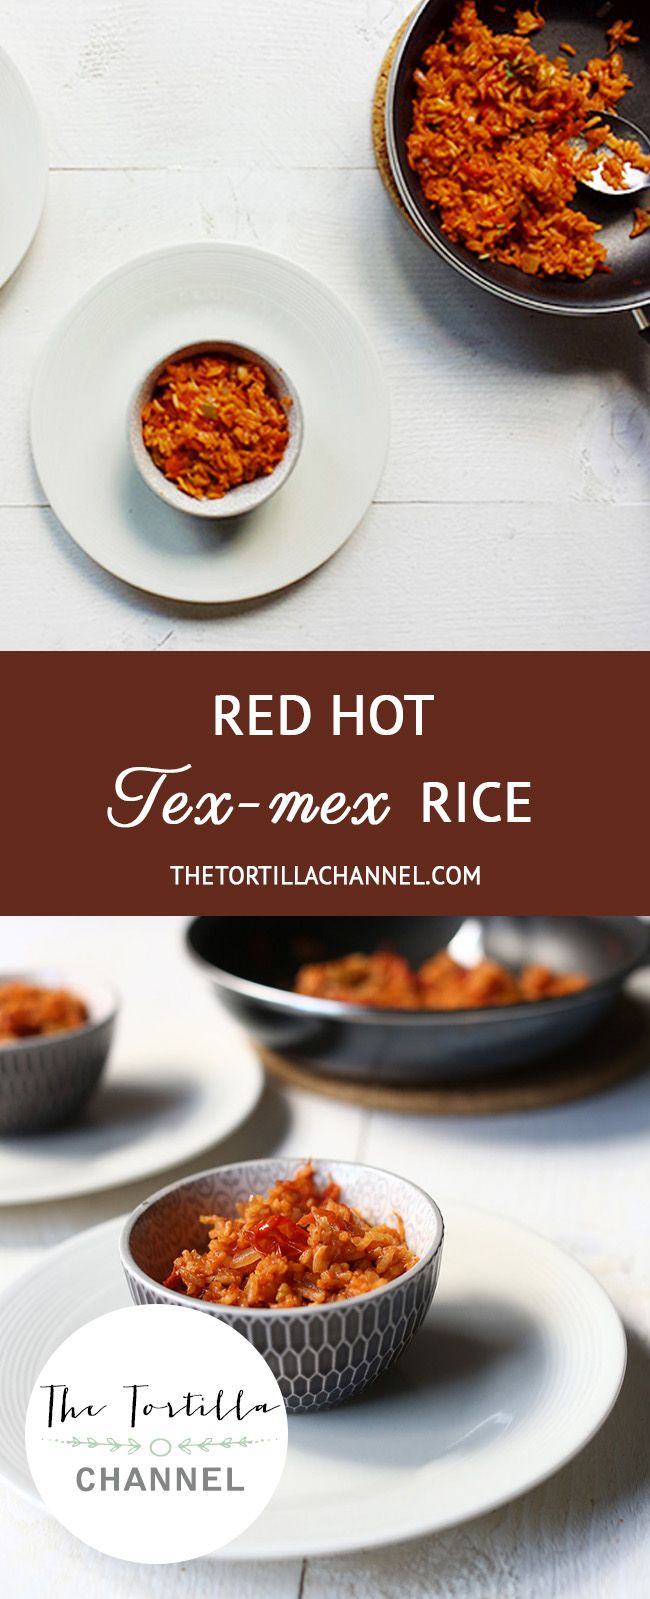 Rice is one of my favorite side dishes. This red hot tex-mex rice is a one pot rice recipe that takes about 20 minutes to prepare. So let get started! #vegan #thetortillachannel